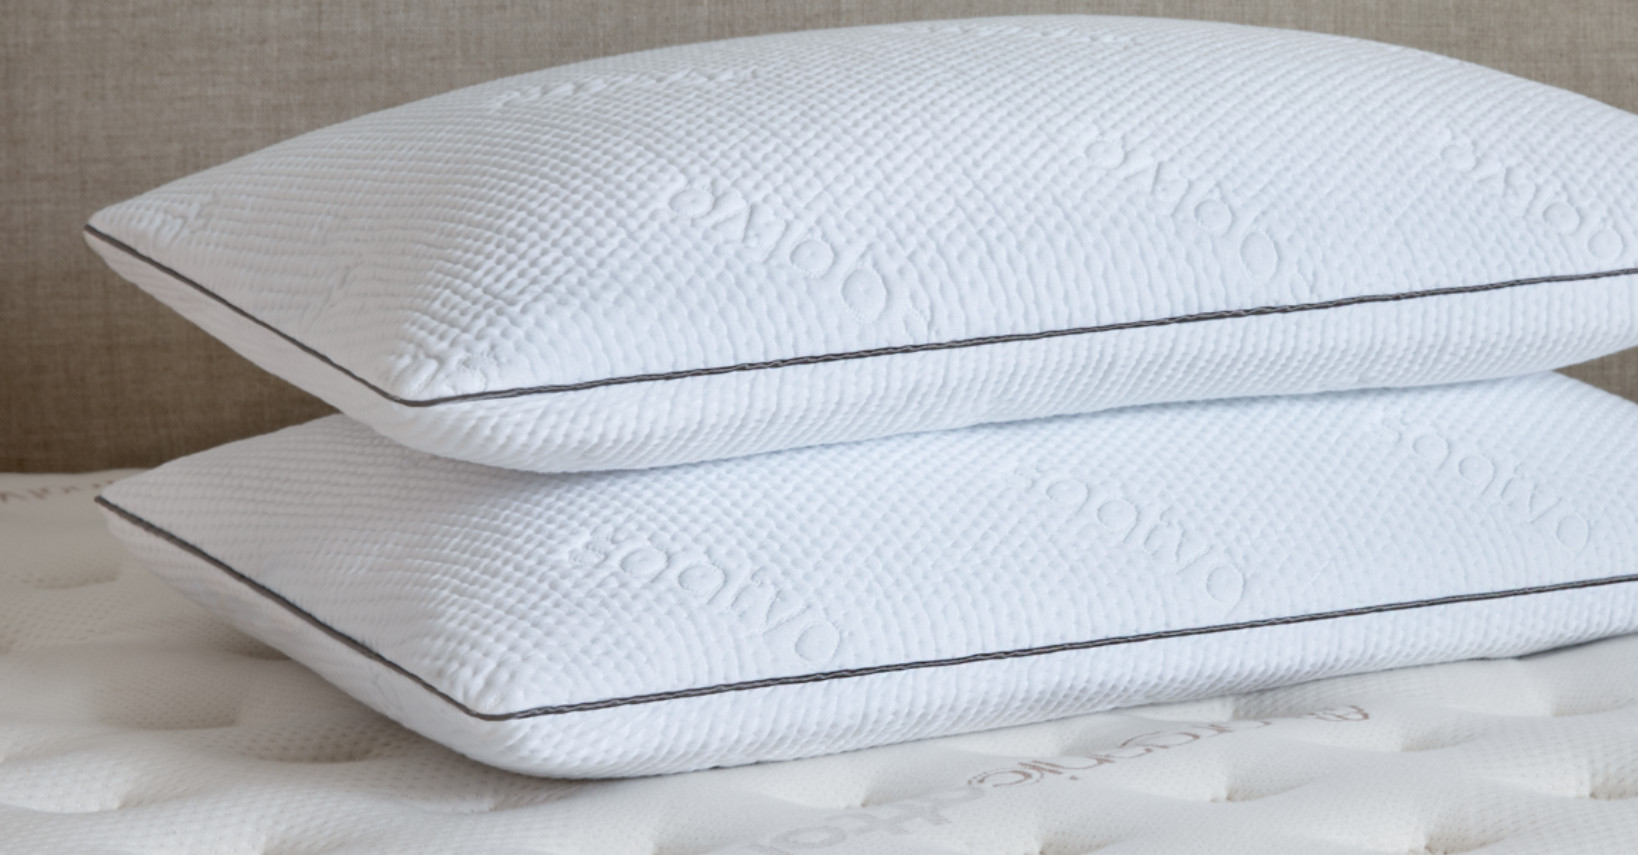 double stack memory foam pillow from saatva